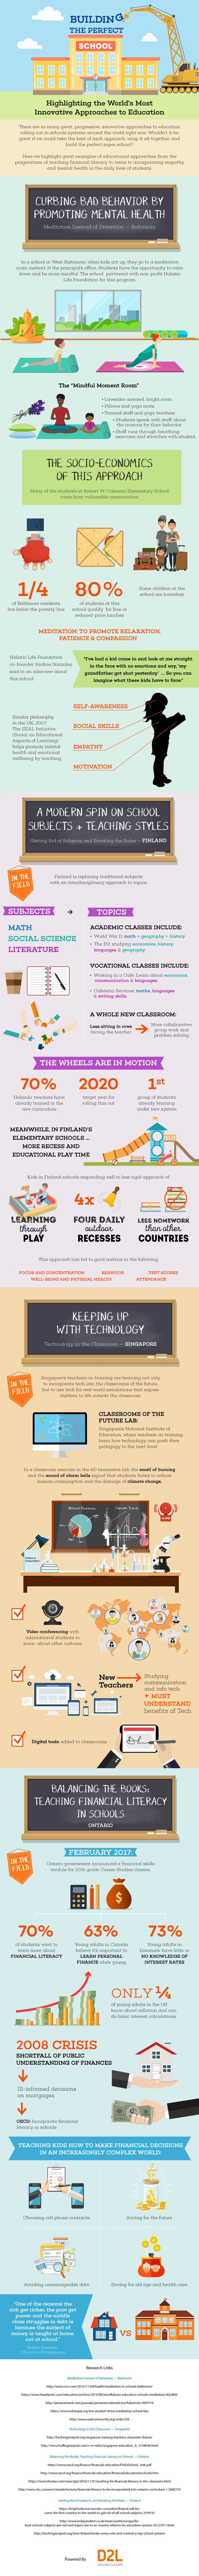 Building The Perfect School Infographic School Infographic Educational Infographic Infographic Developing future ready classroom with